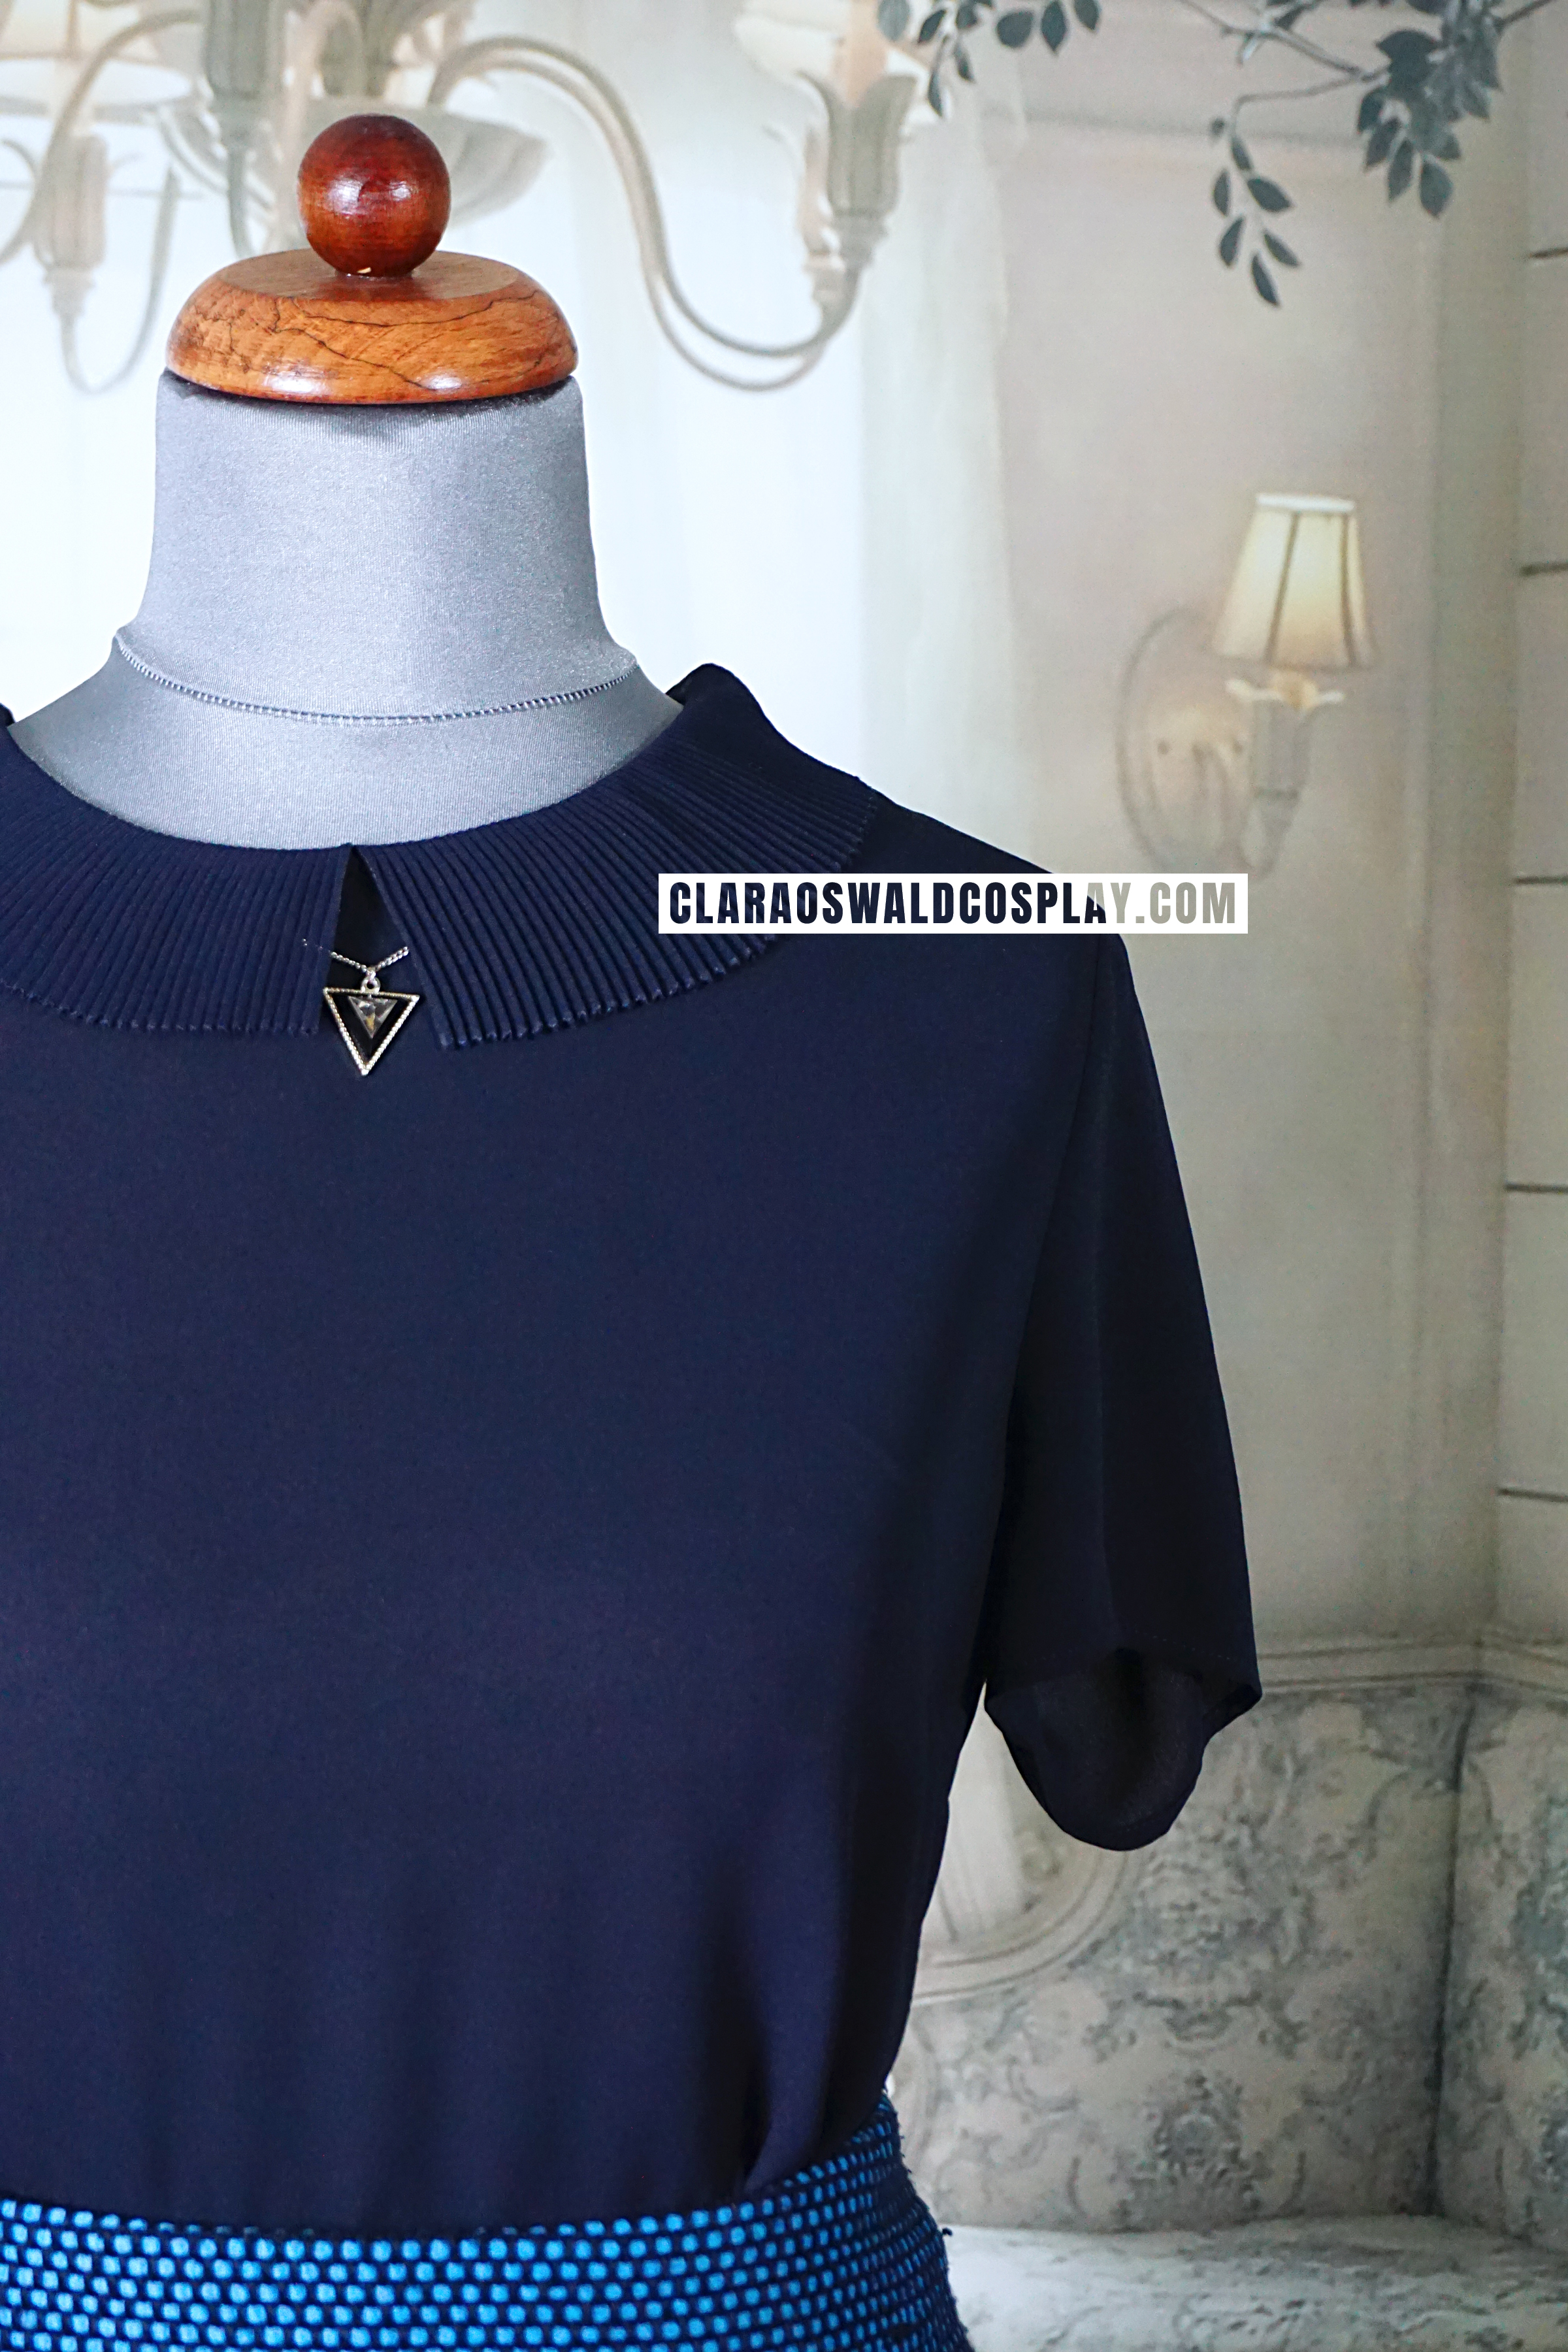 A closer look at the collar of Clara Oswald's Claudie Pierlot Brooklyn Top